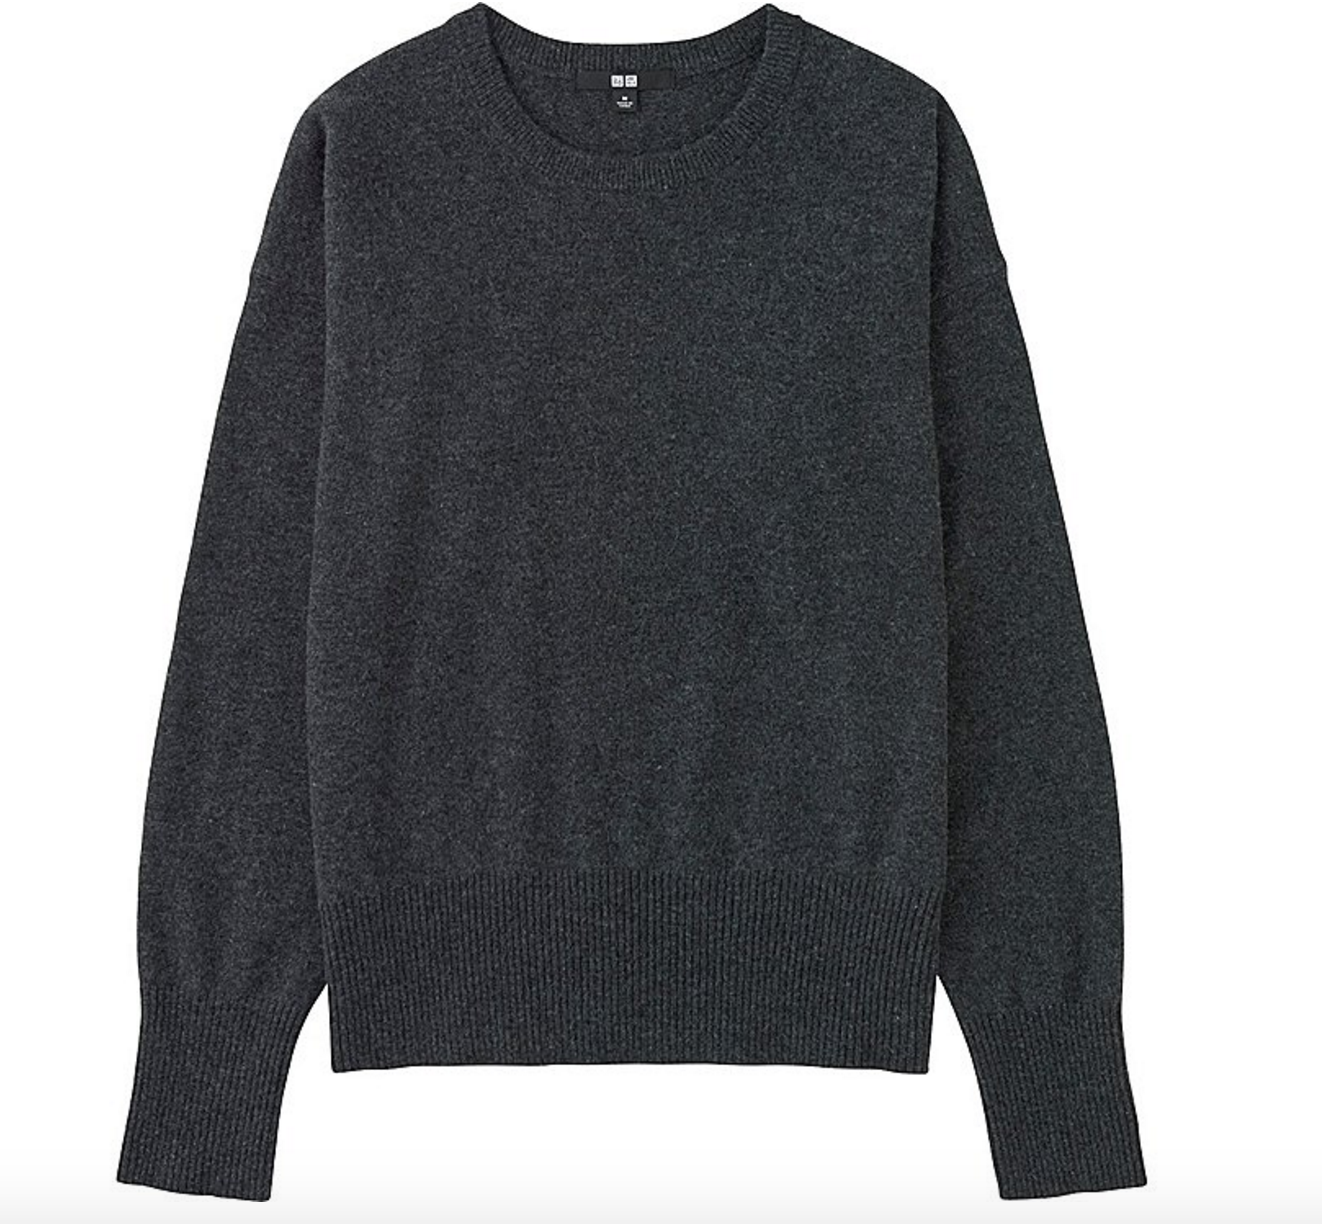 https://www.uniqlo.com/us/en/womens-cashmere-crew-neck-sweater-173616.html?